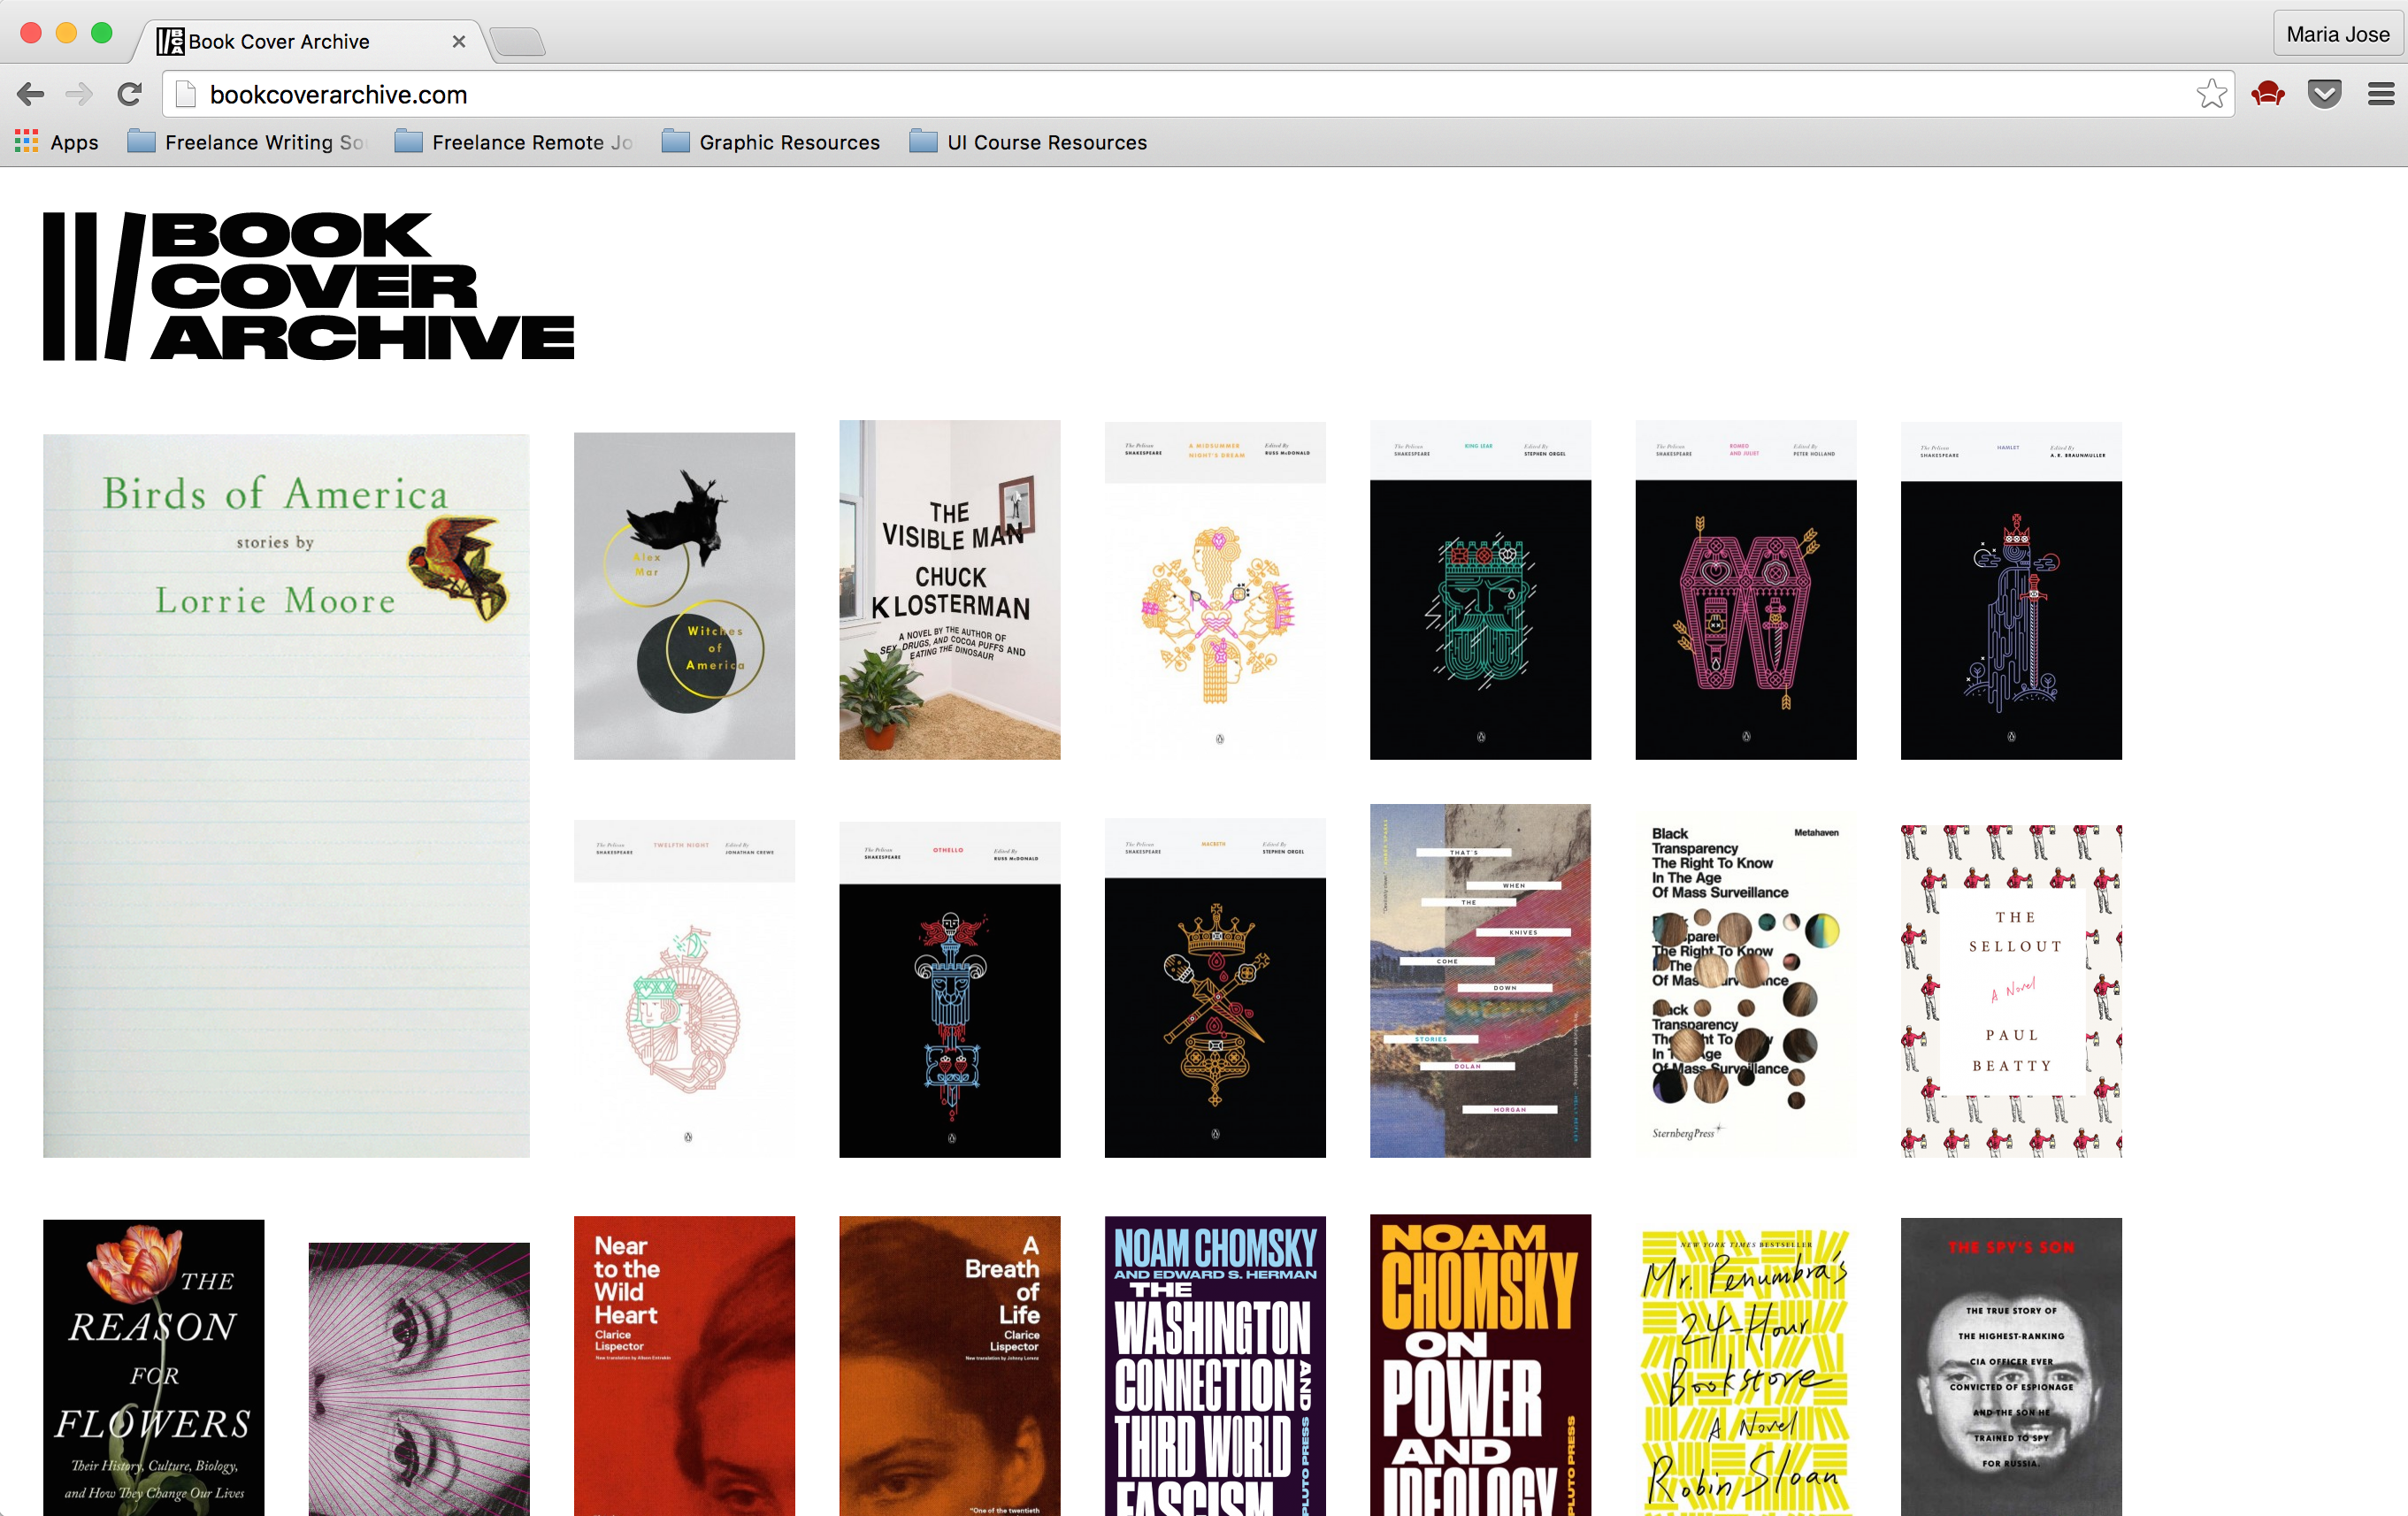 Book Cover Archive : Headers guaranteed to draw readers into any post